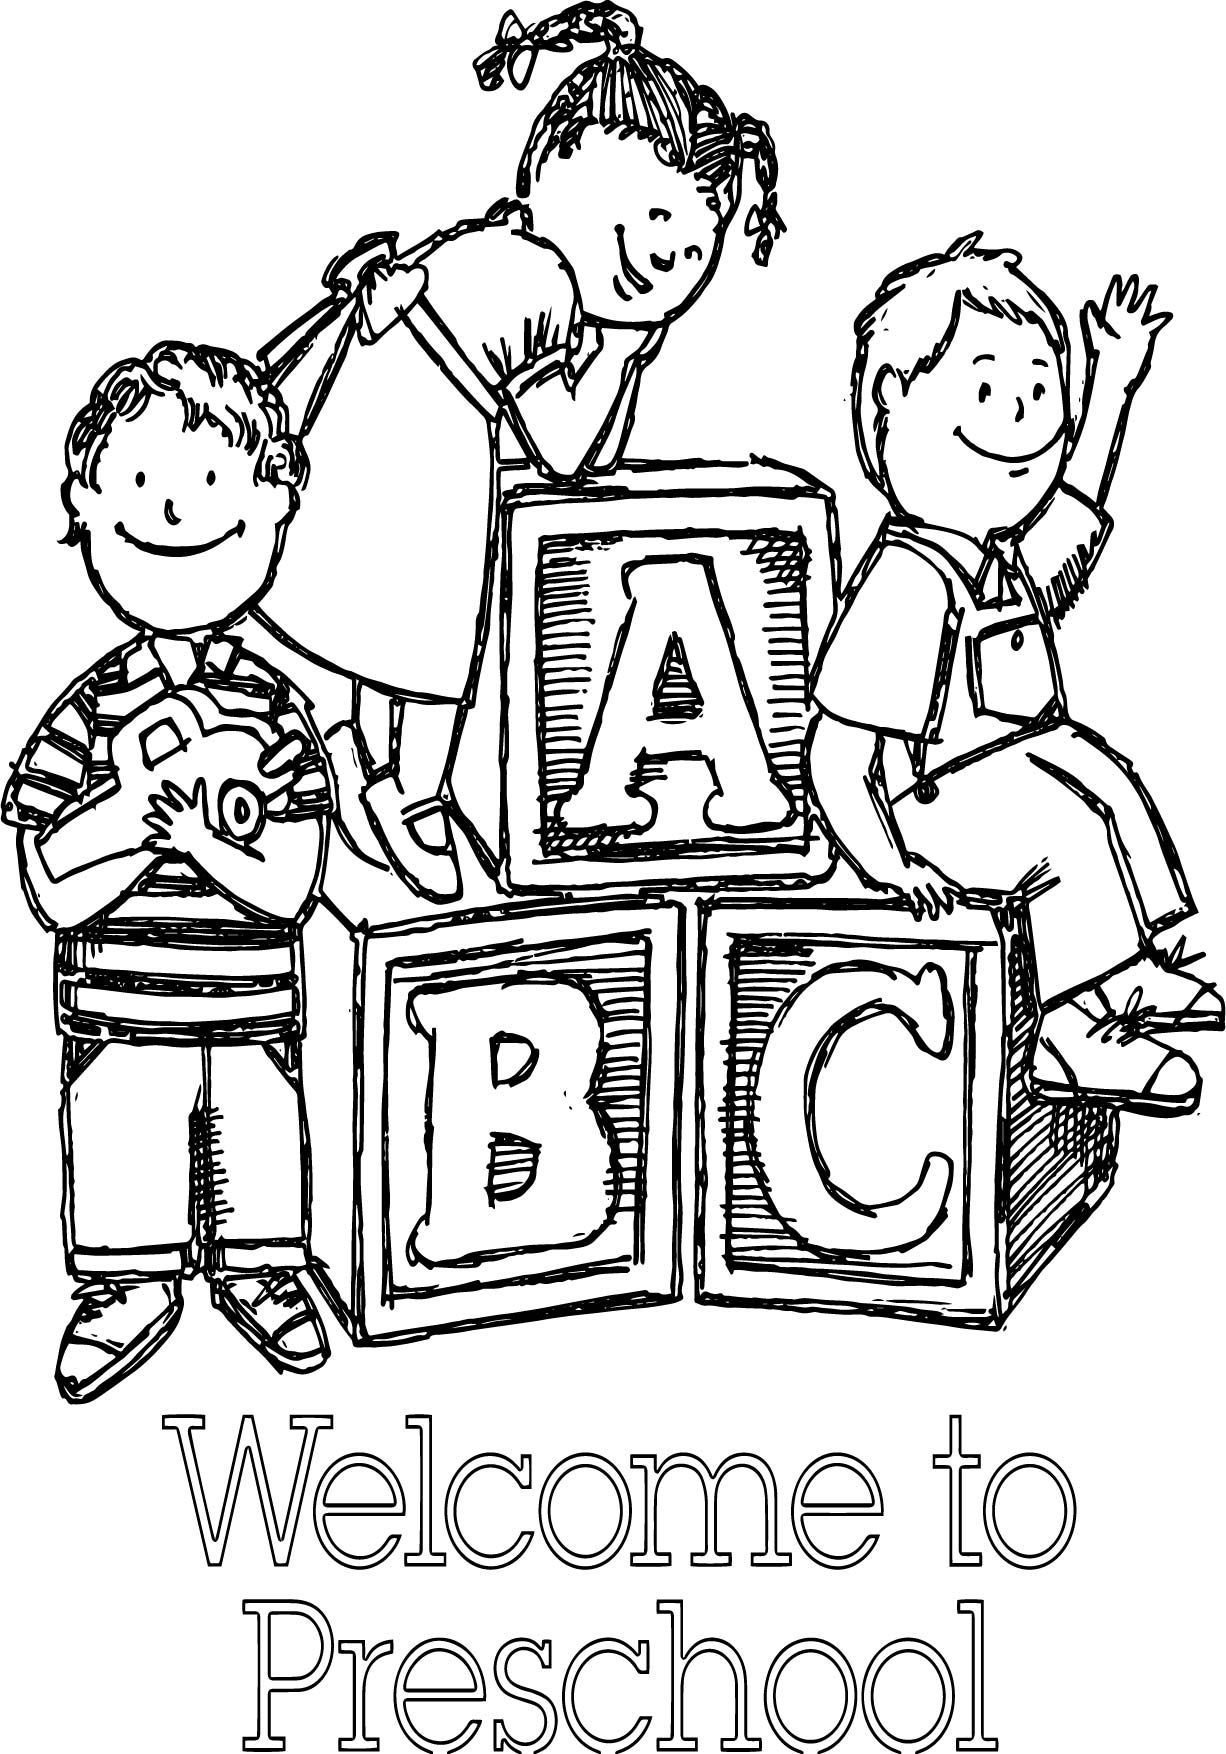 Welcome To Preschool Sketch Coloring Page Wecoloringpage Com